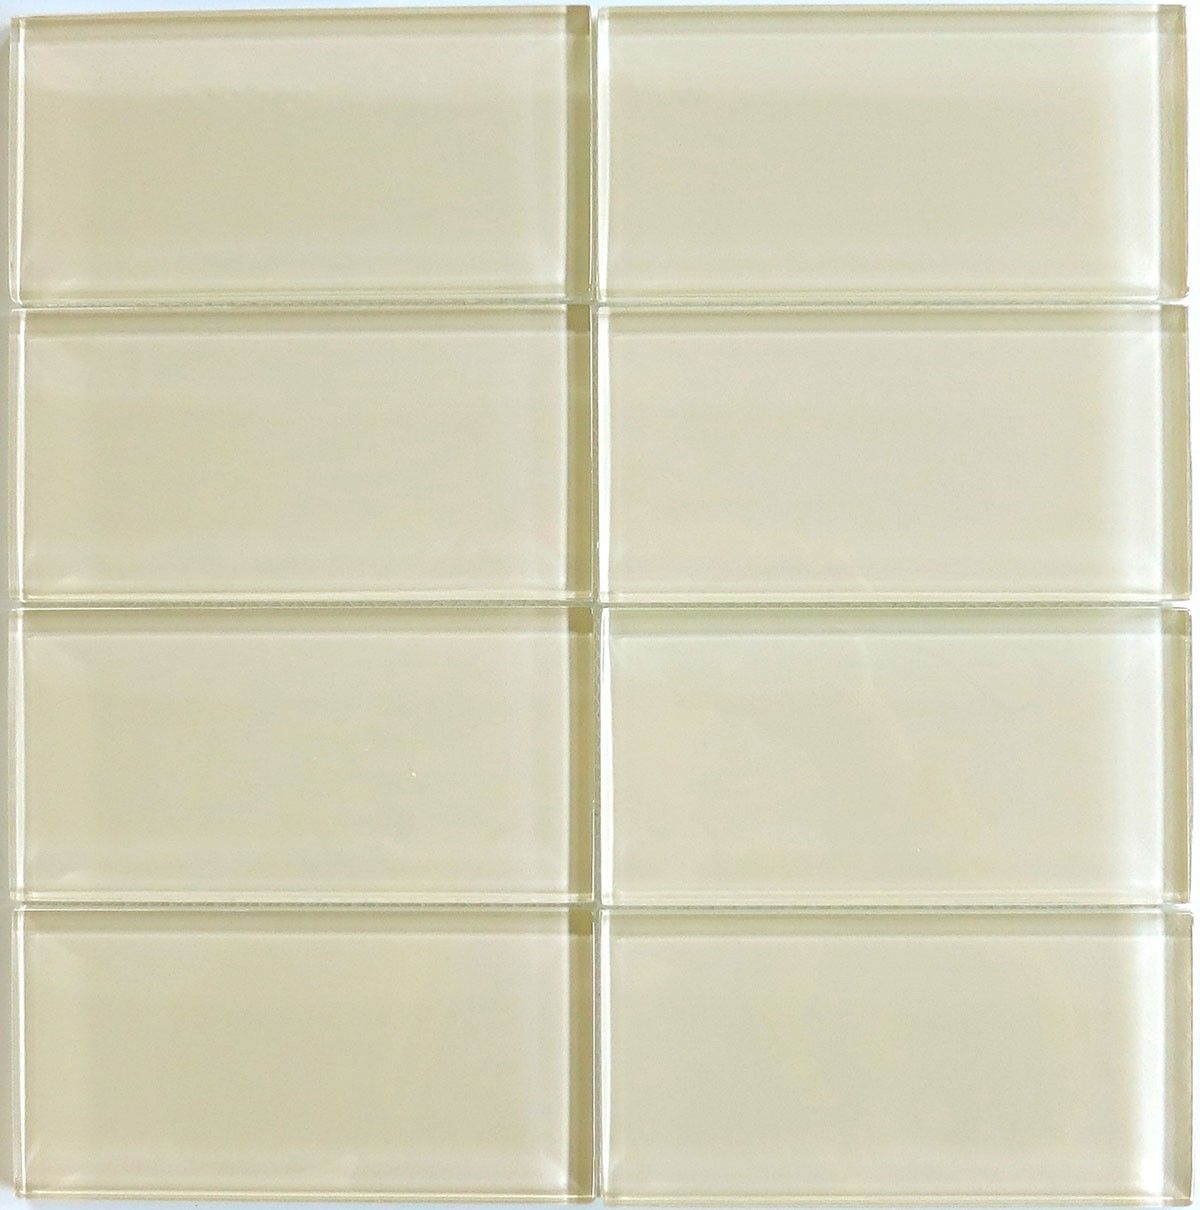 Fantastic 2 By 4 Ceiling Tiles Thin 24 Inch Ceramic Tile Rectangular 2X4 Drop Ceiling Tiles 4X4 Ceramic Floor Tile Youthful 8 Inch Ceramic Tile PinkAccent Backsplash Tiles Lush Cameo   3x6 Glass Subway Tile | Kitchen | Pinterest | Subway ..